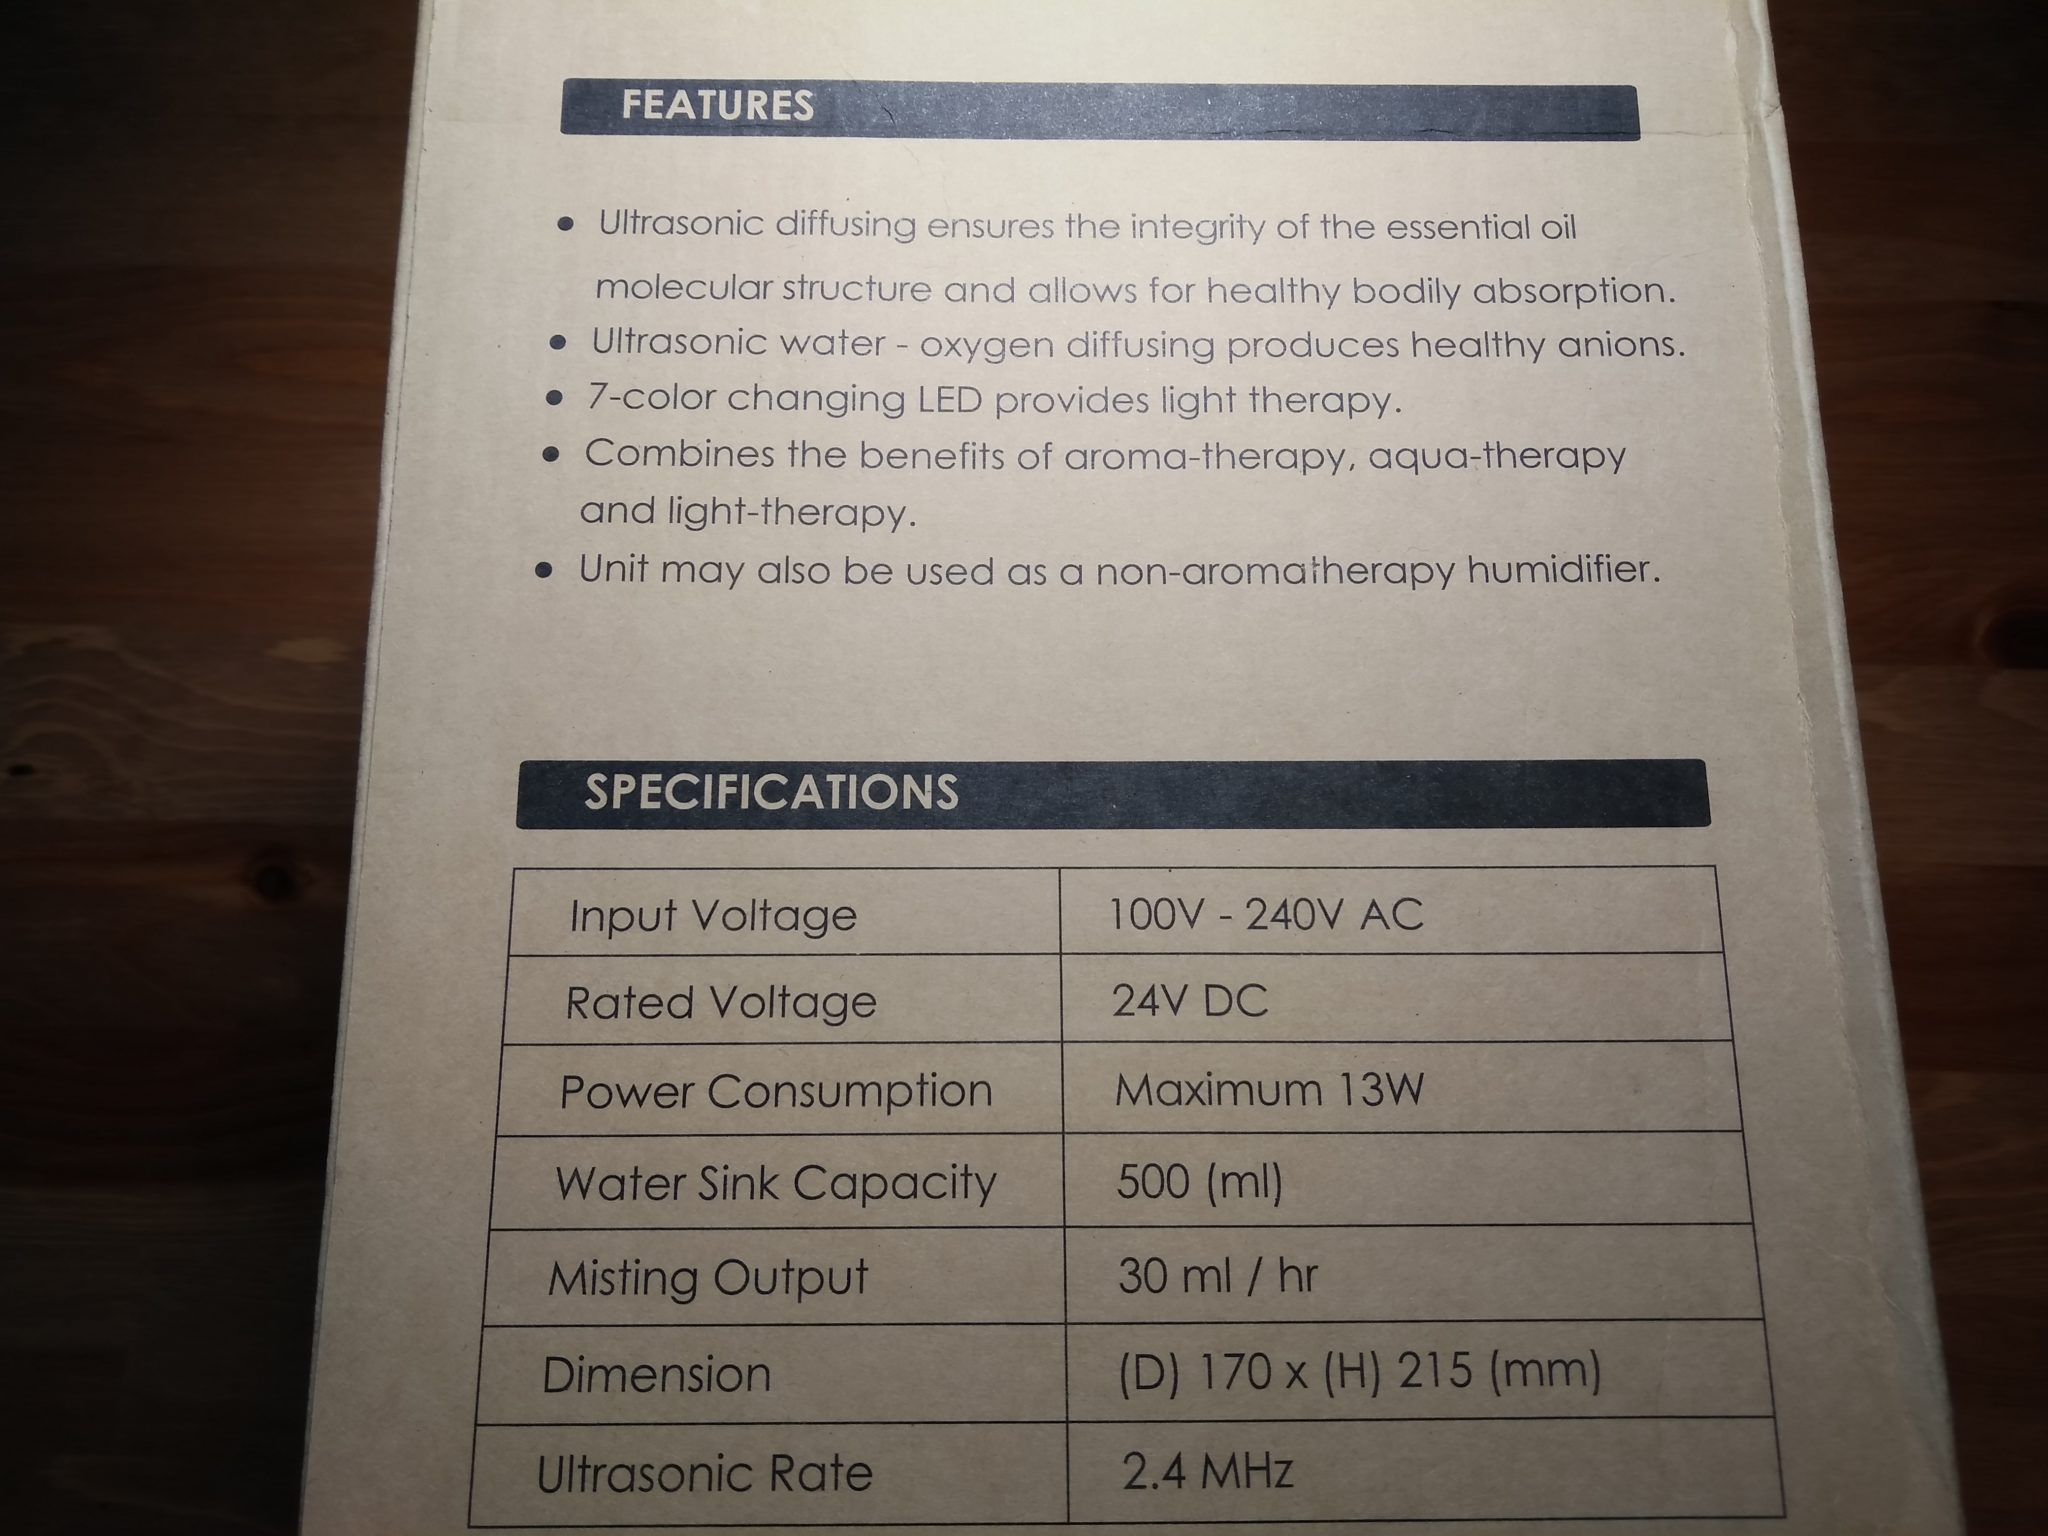 AUKEY BE-A5 Specs